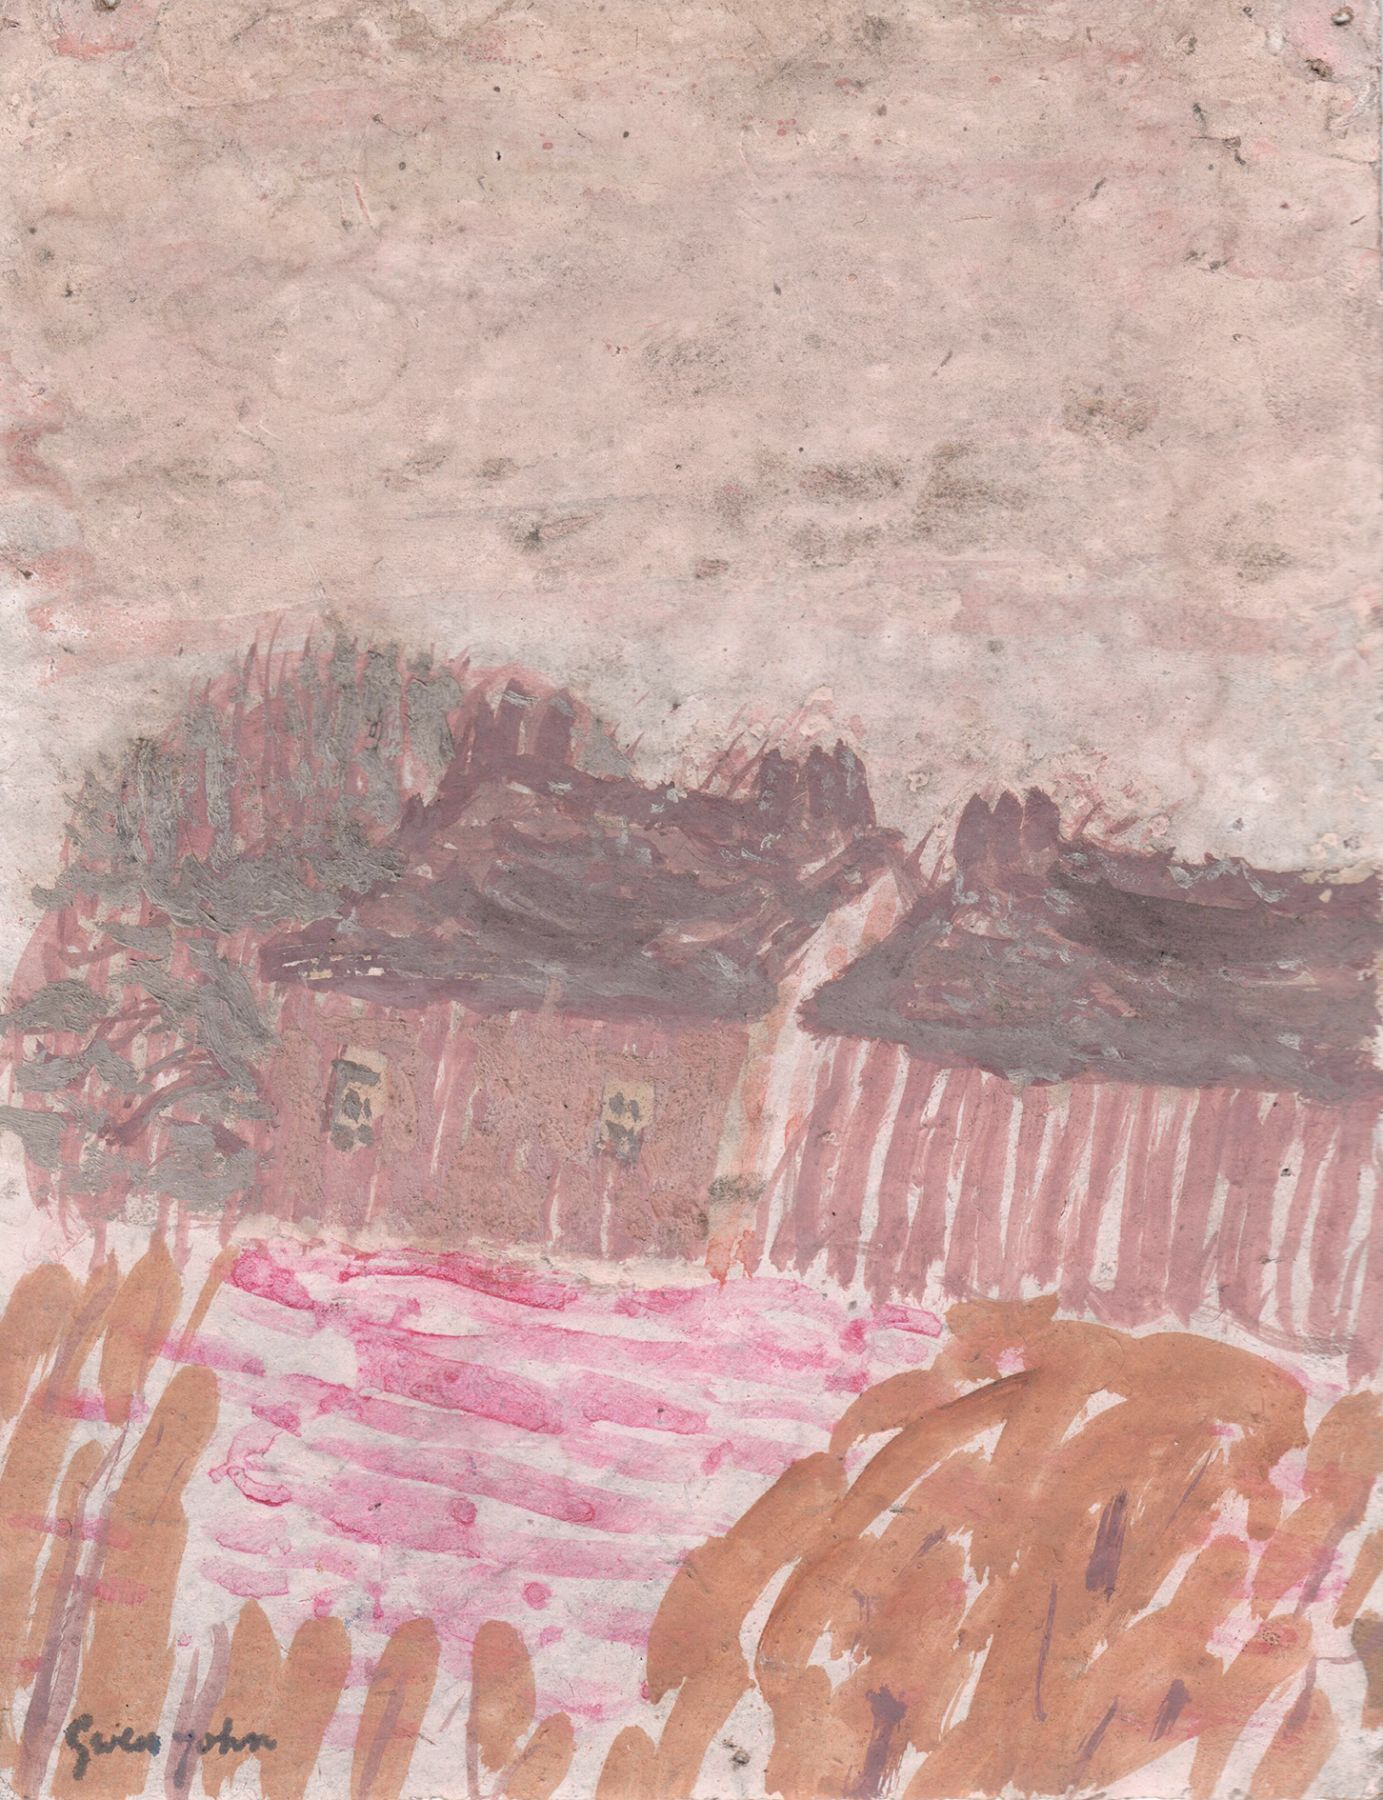 Gwen John, Two Houses in a Landscape, late 1920s, Gouache and pencil on brown paper 6 3/8 x 4 7/8 inches